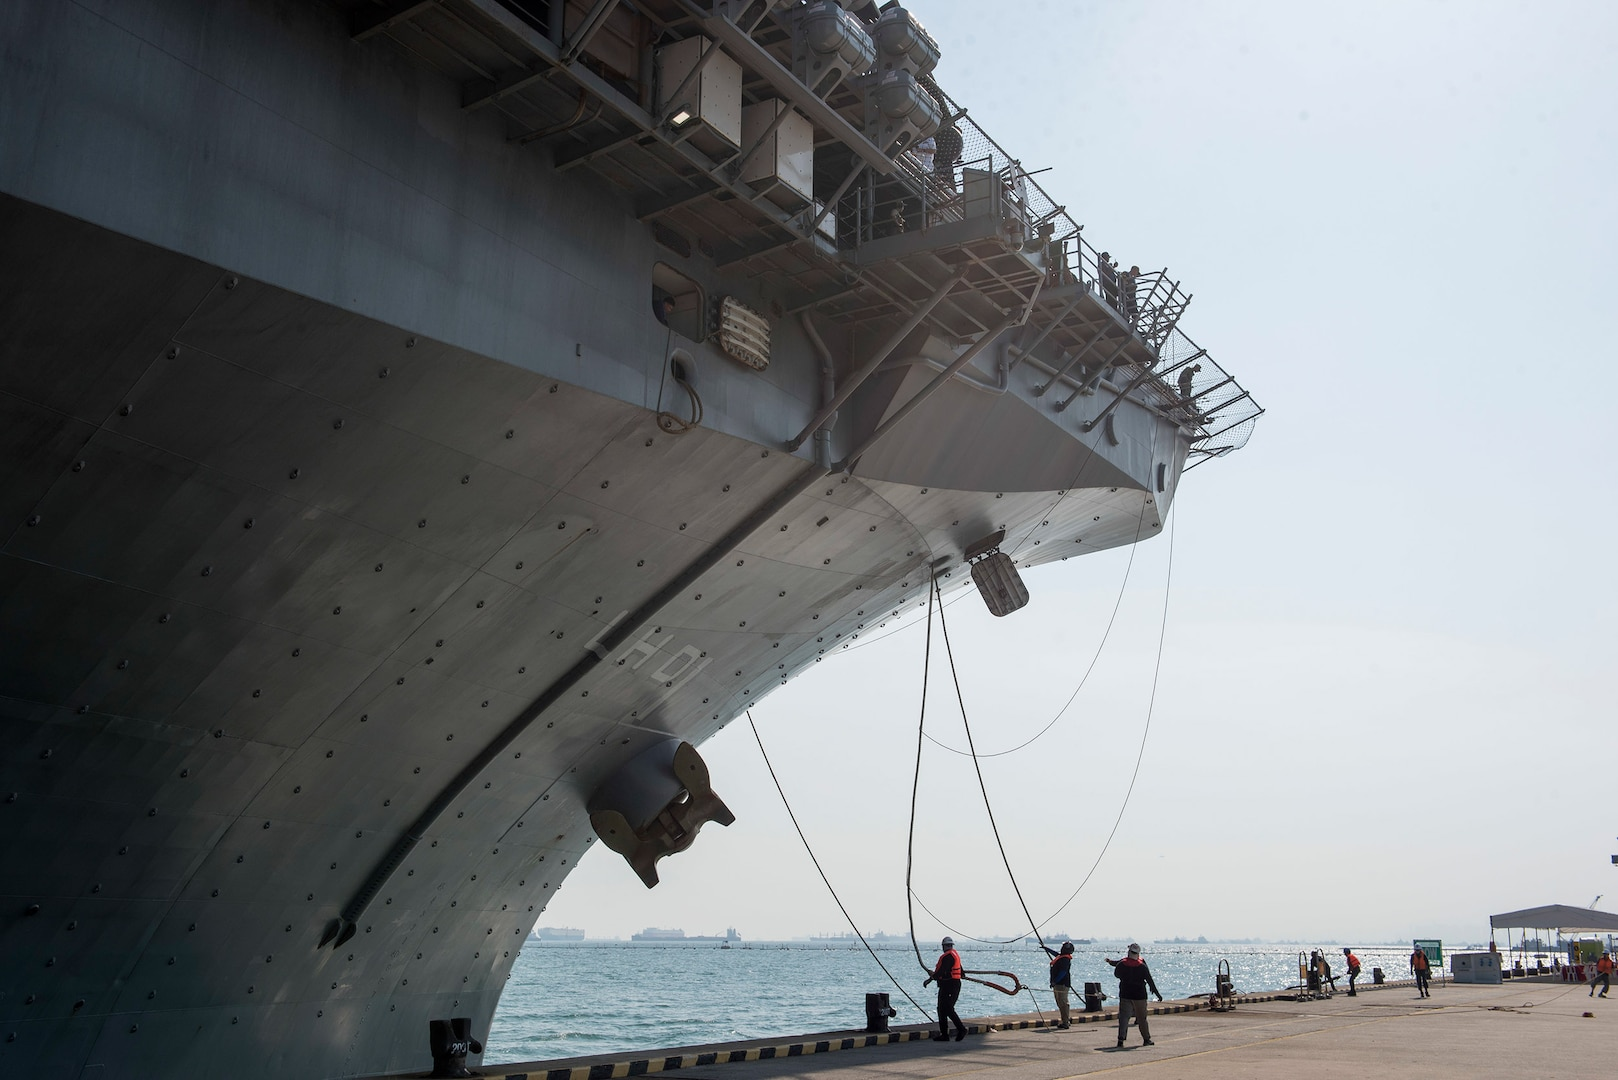 USS Wasp, 31st MEU arrive in Singapore following regional operations